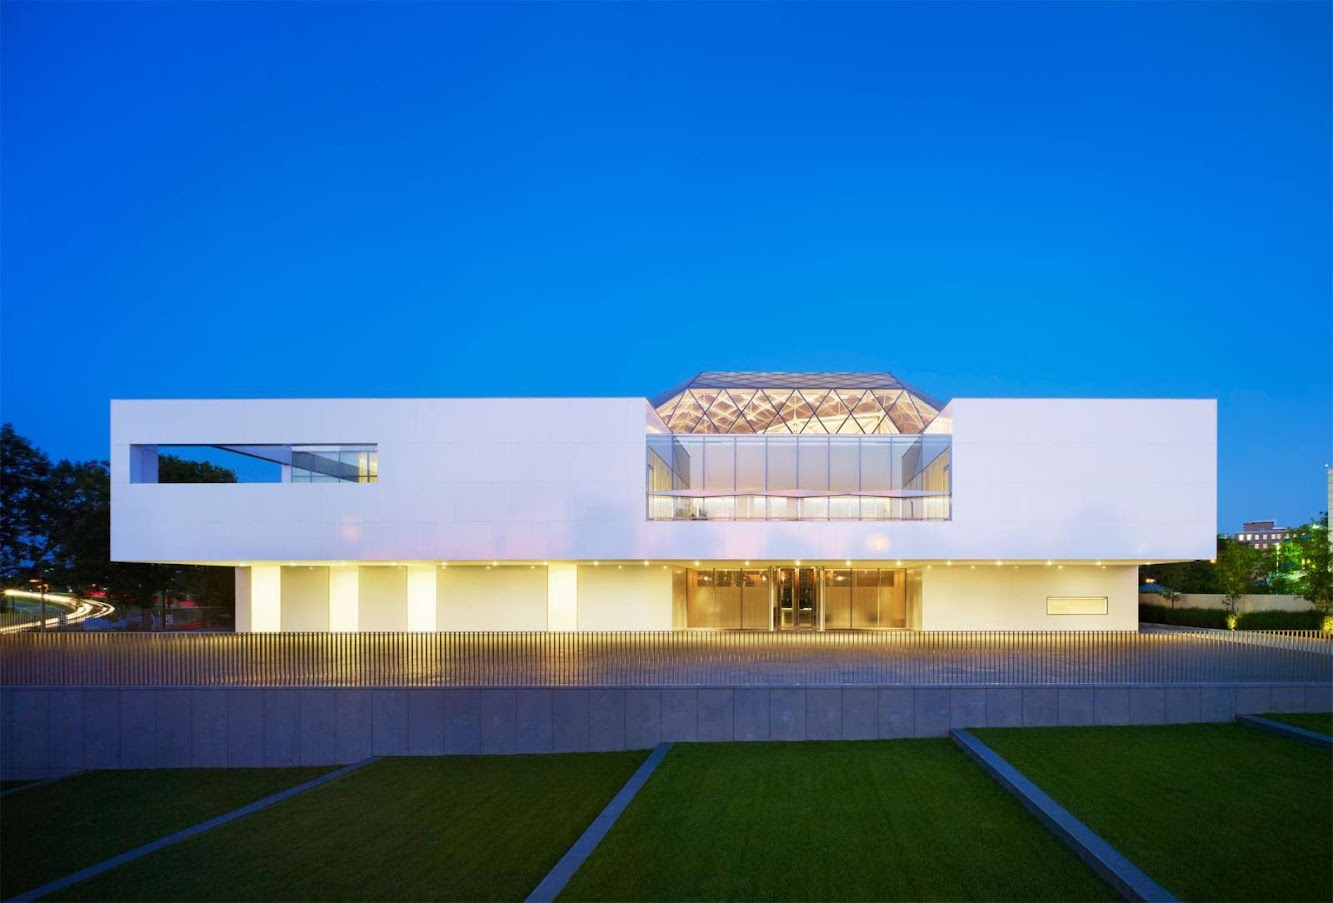 Ottawa, Ontario, Canada: Delegation of the Ismaili Imamat by Maki And Associates